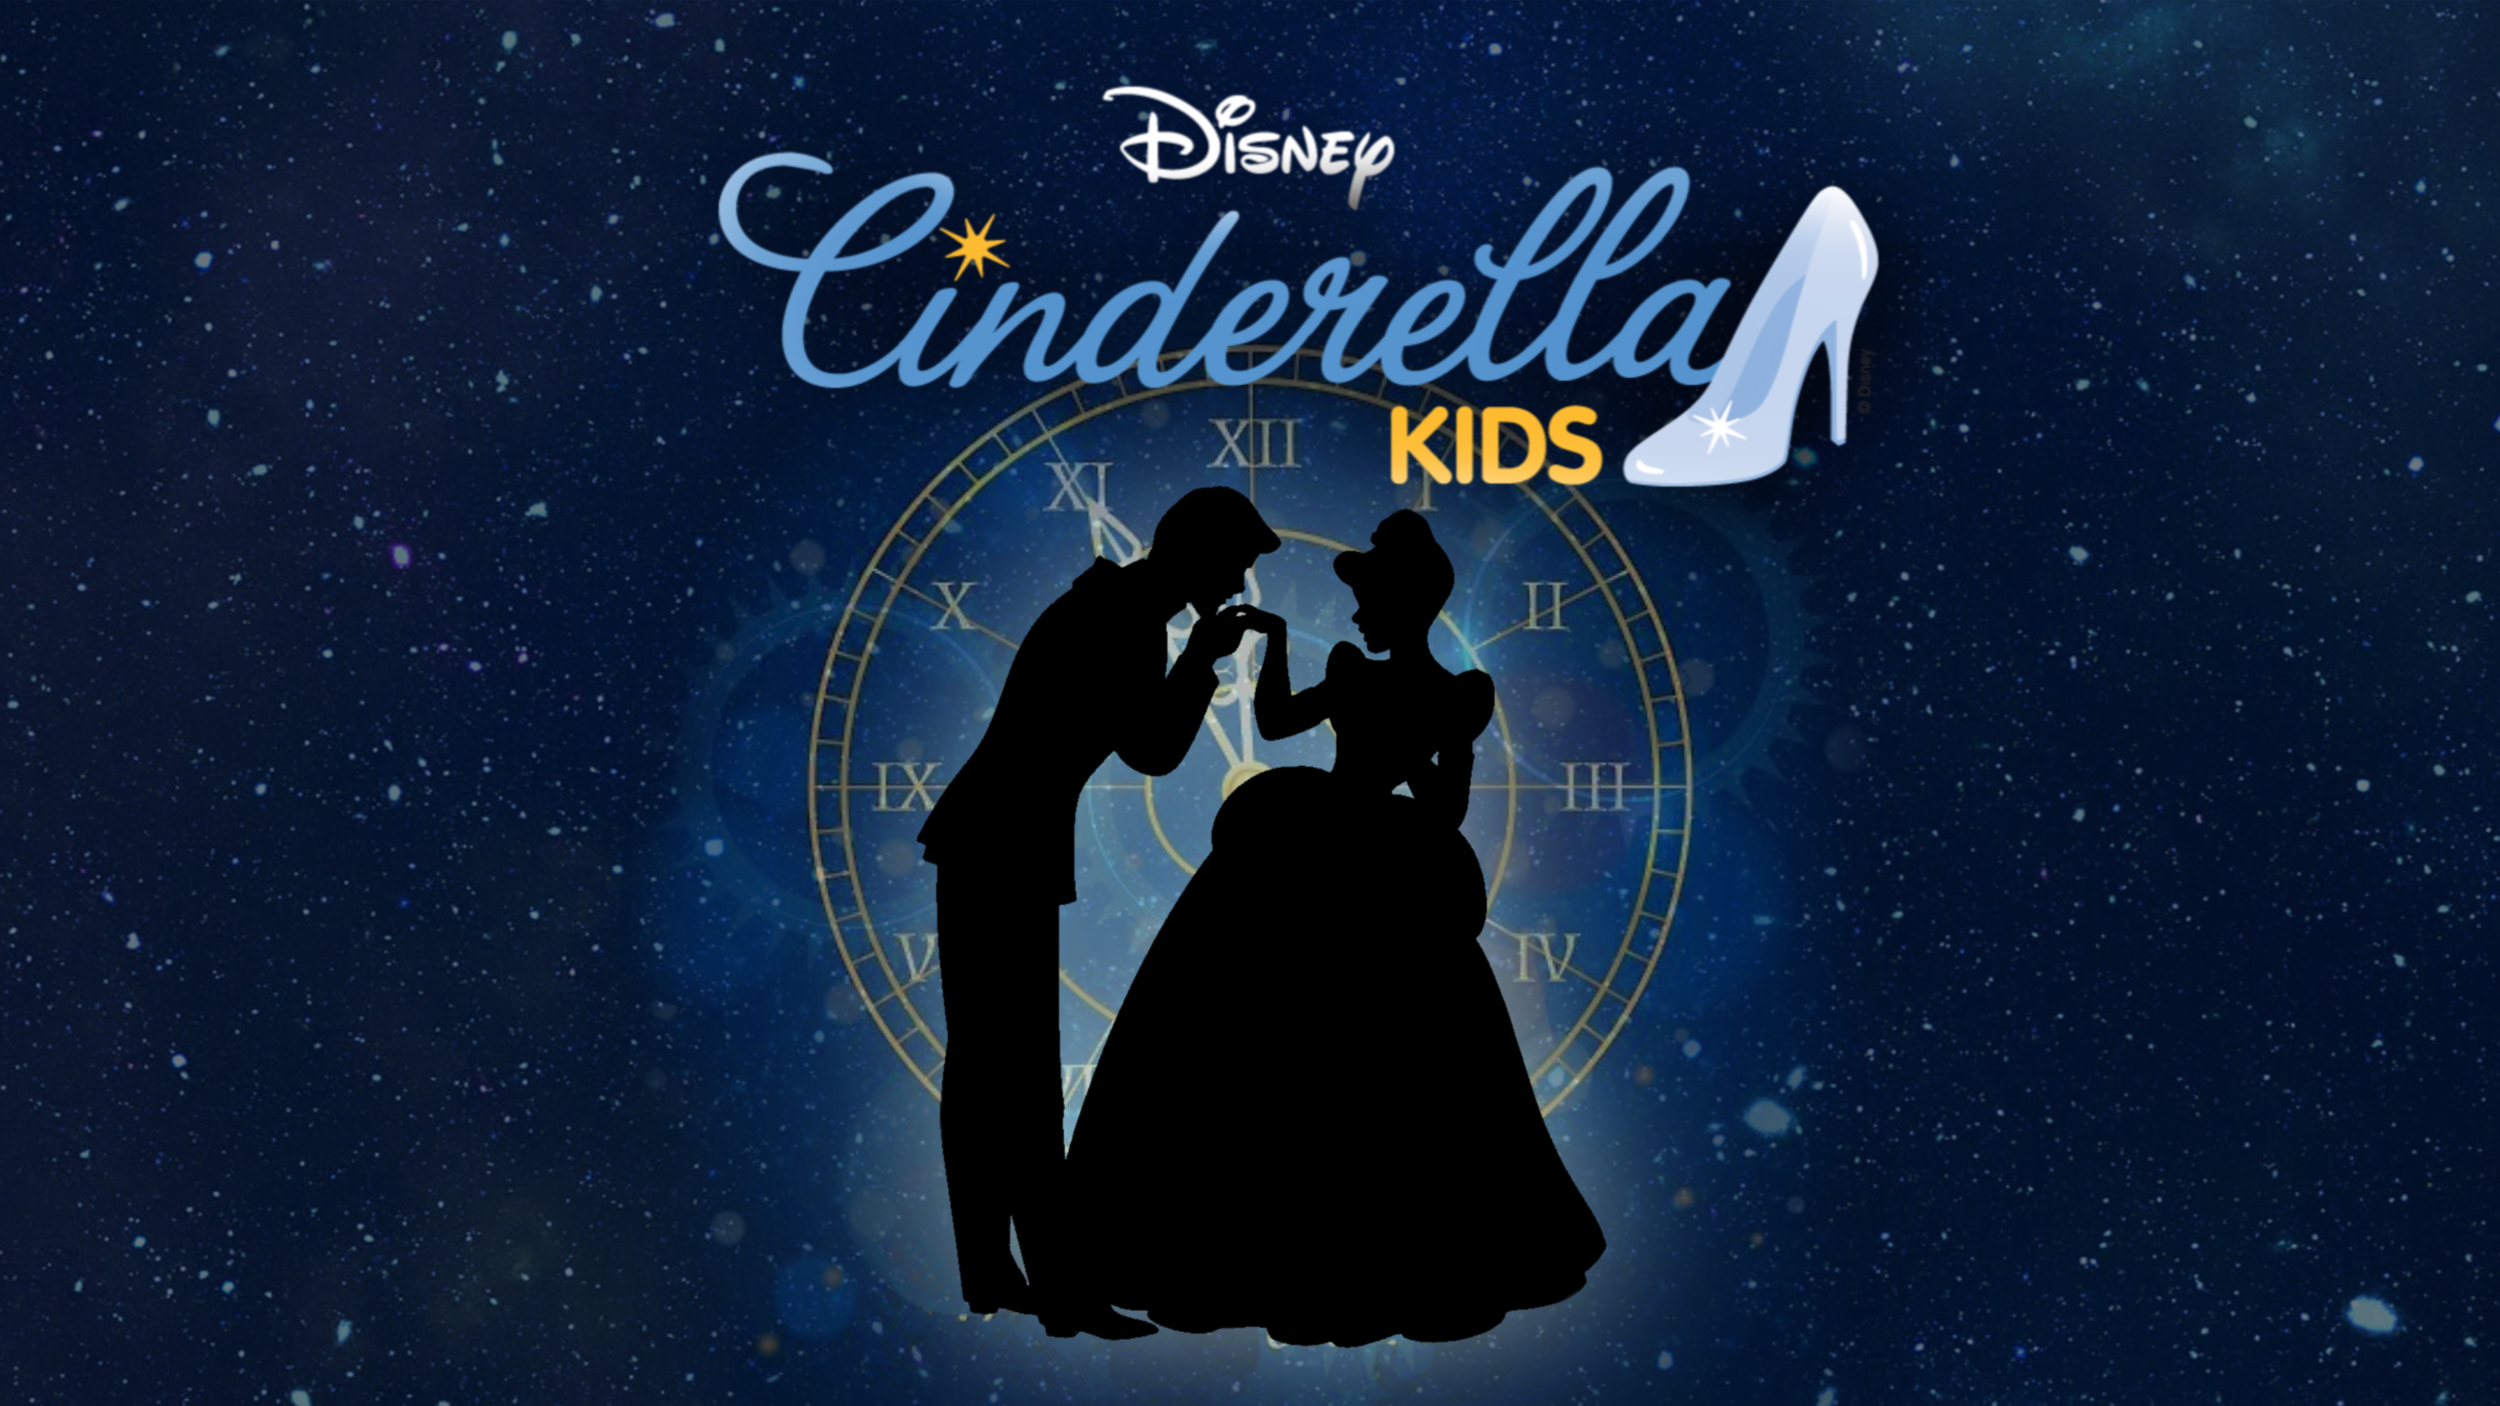 New Cinderella Poster (no text).png